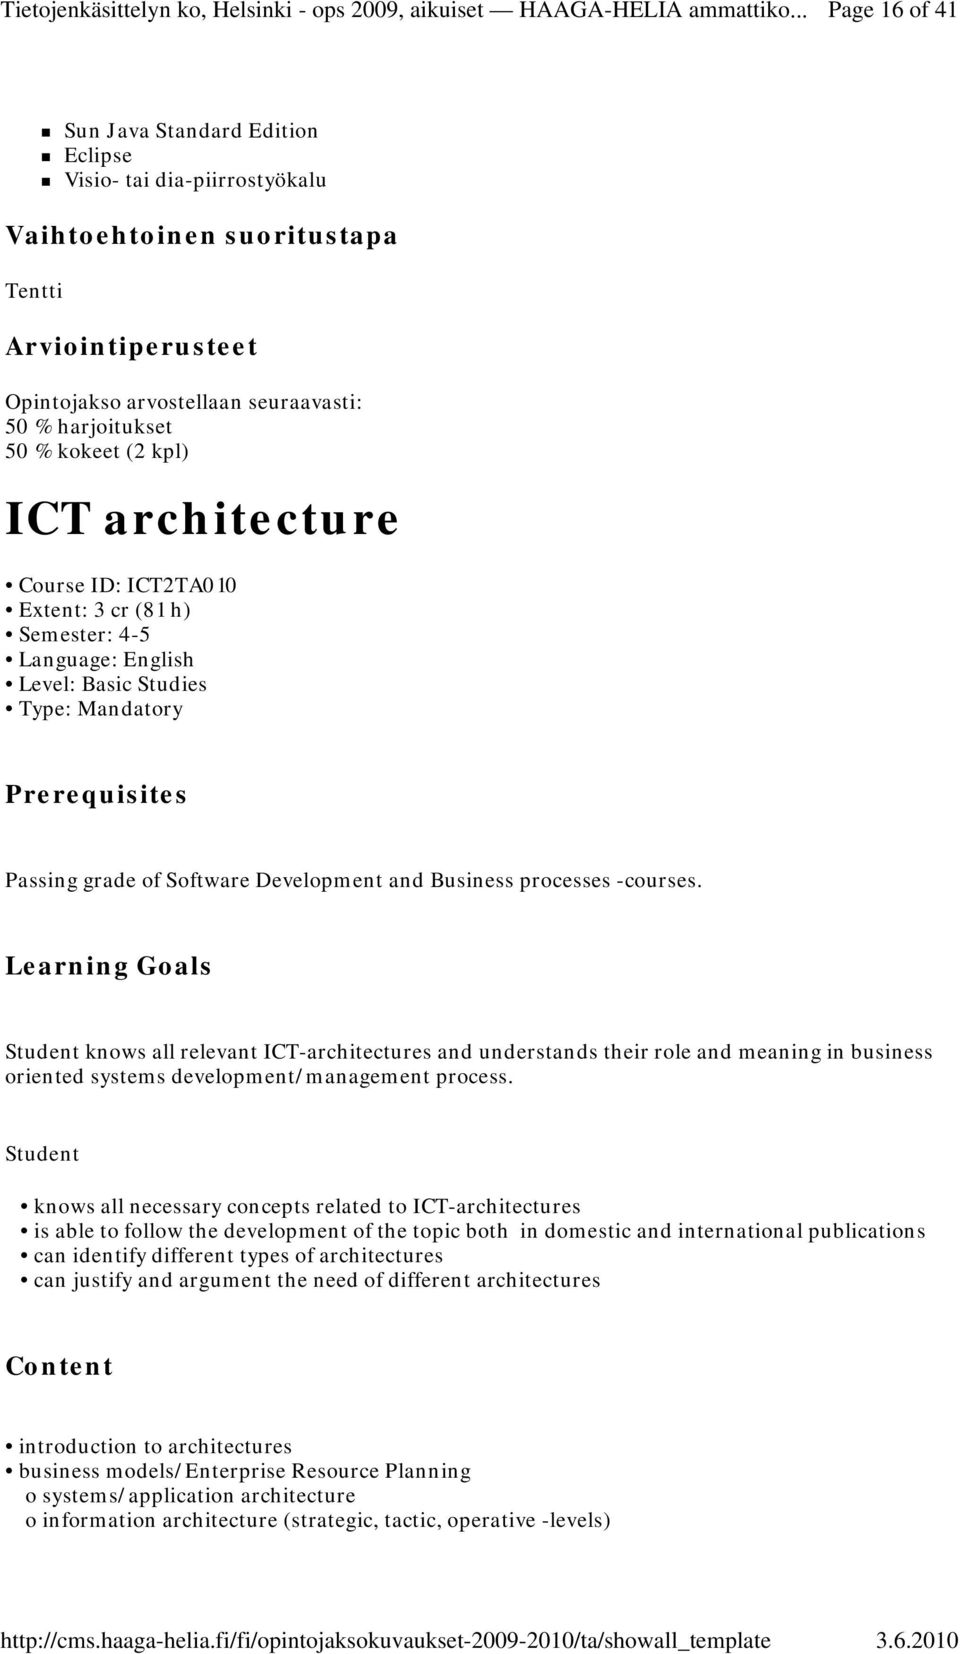 processes -courses. Learning Goals Student knows all relevant ICT-architectures and understands their role and meaning in business oriented systems development/management process.